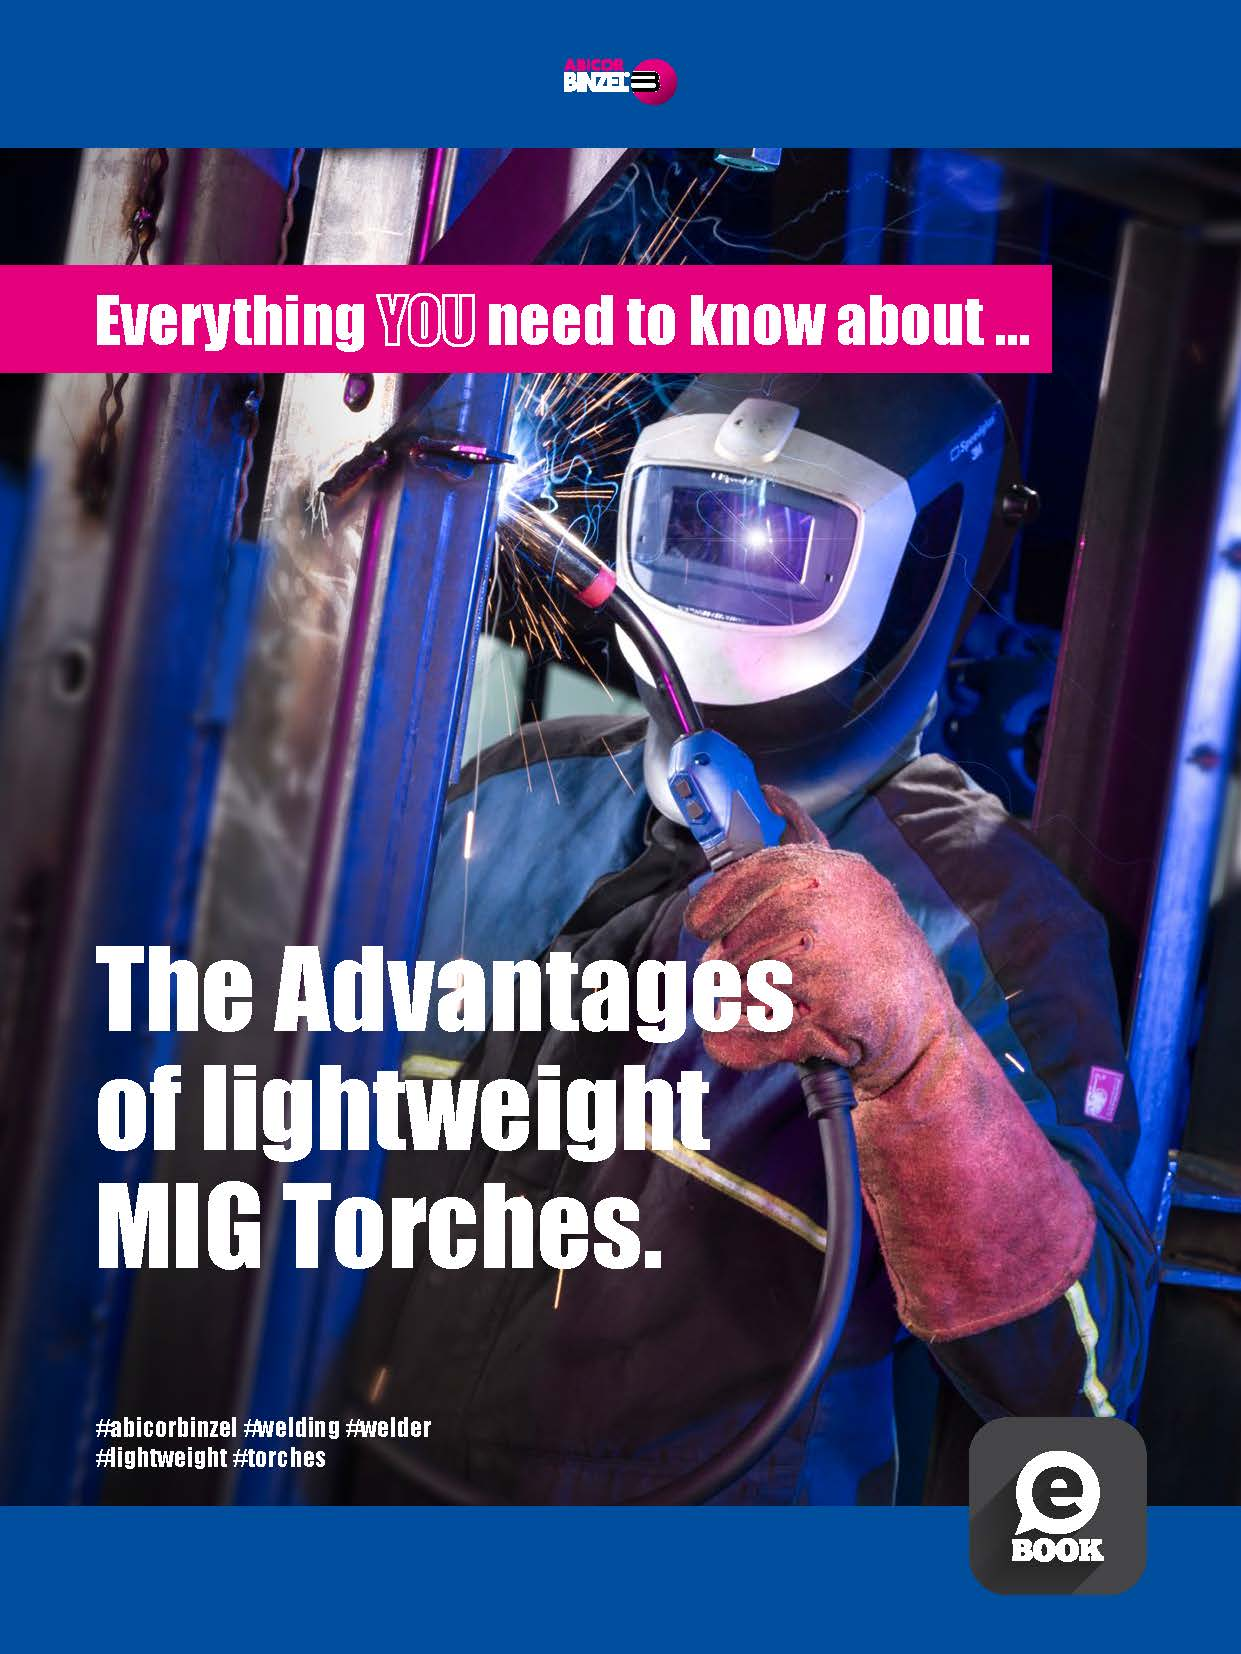 The Advantages of lightweight MIG Torches